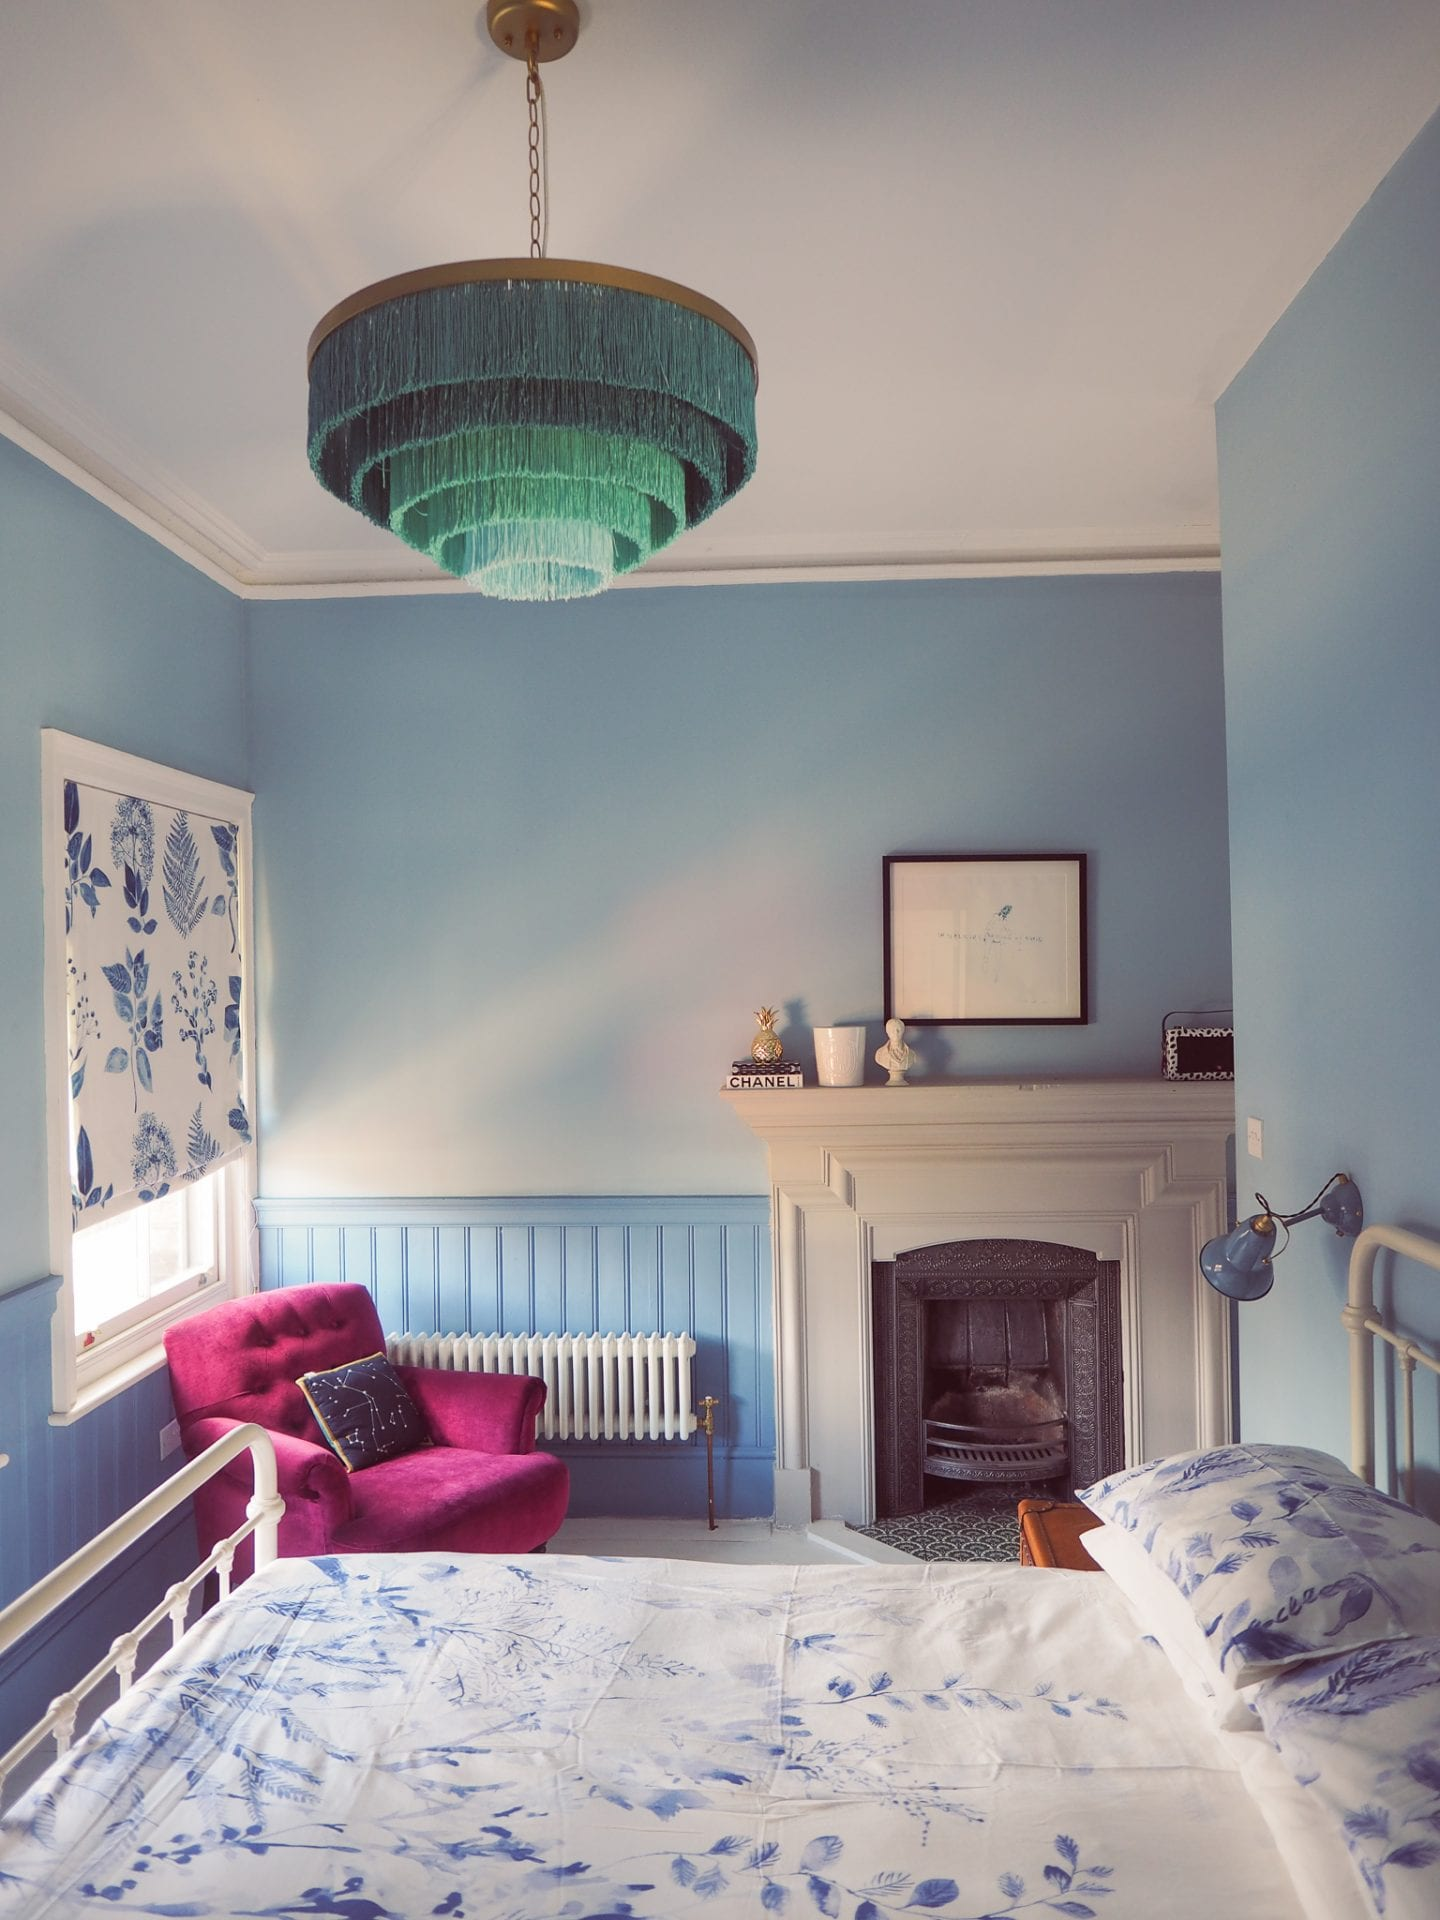 blue-seaside-bedroom-anthropologie-fringing-fright-light-chandelier-pendant-lighting